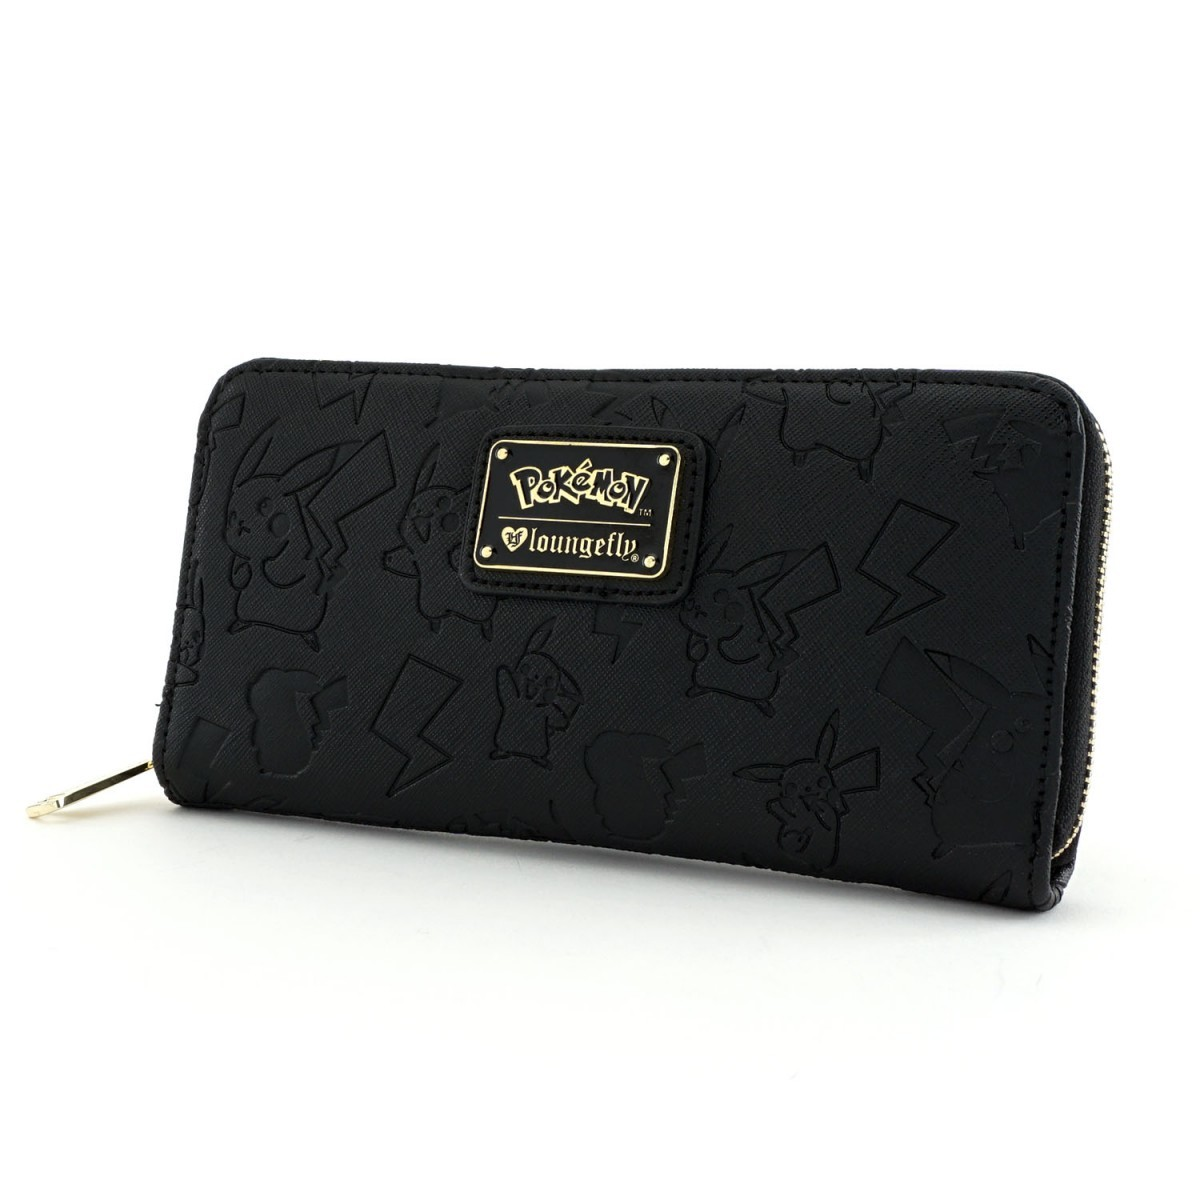 Loungefly Pokemon Pikachu Black Embossed Zip Around Wallet image